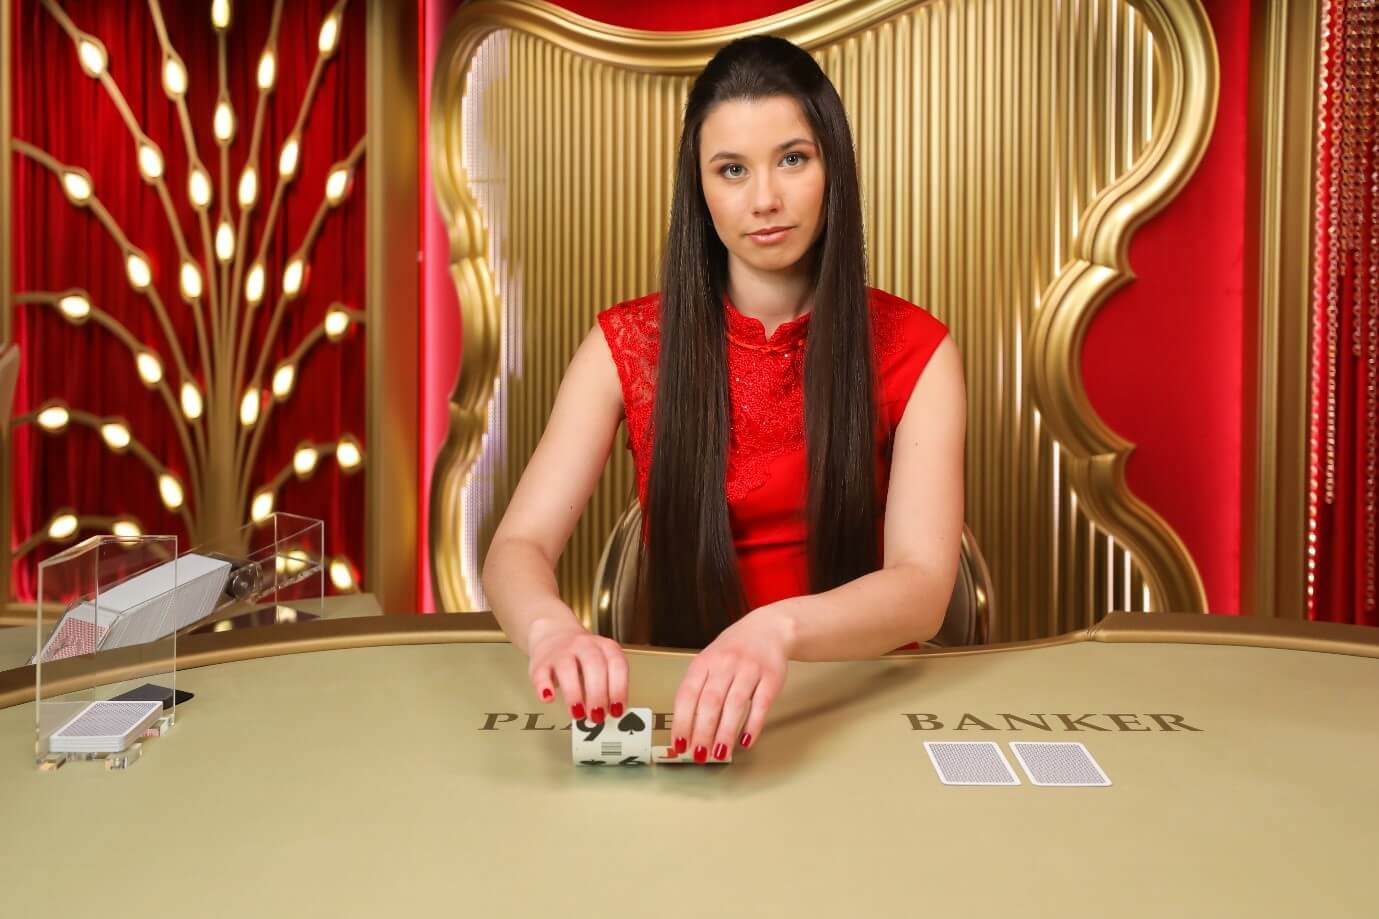 An Evolution Gaming dealer squeezing cards at a Live Baccarat table